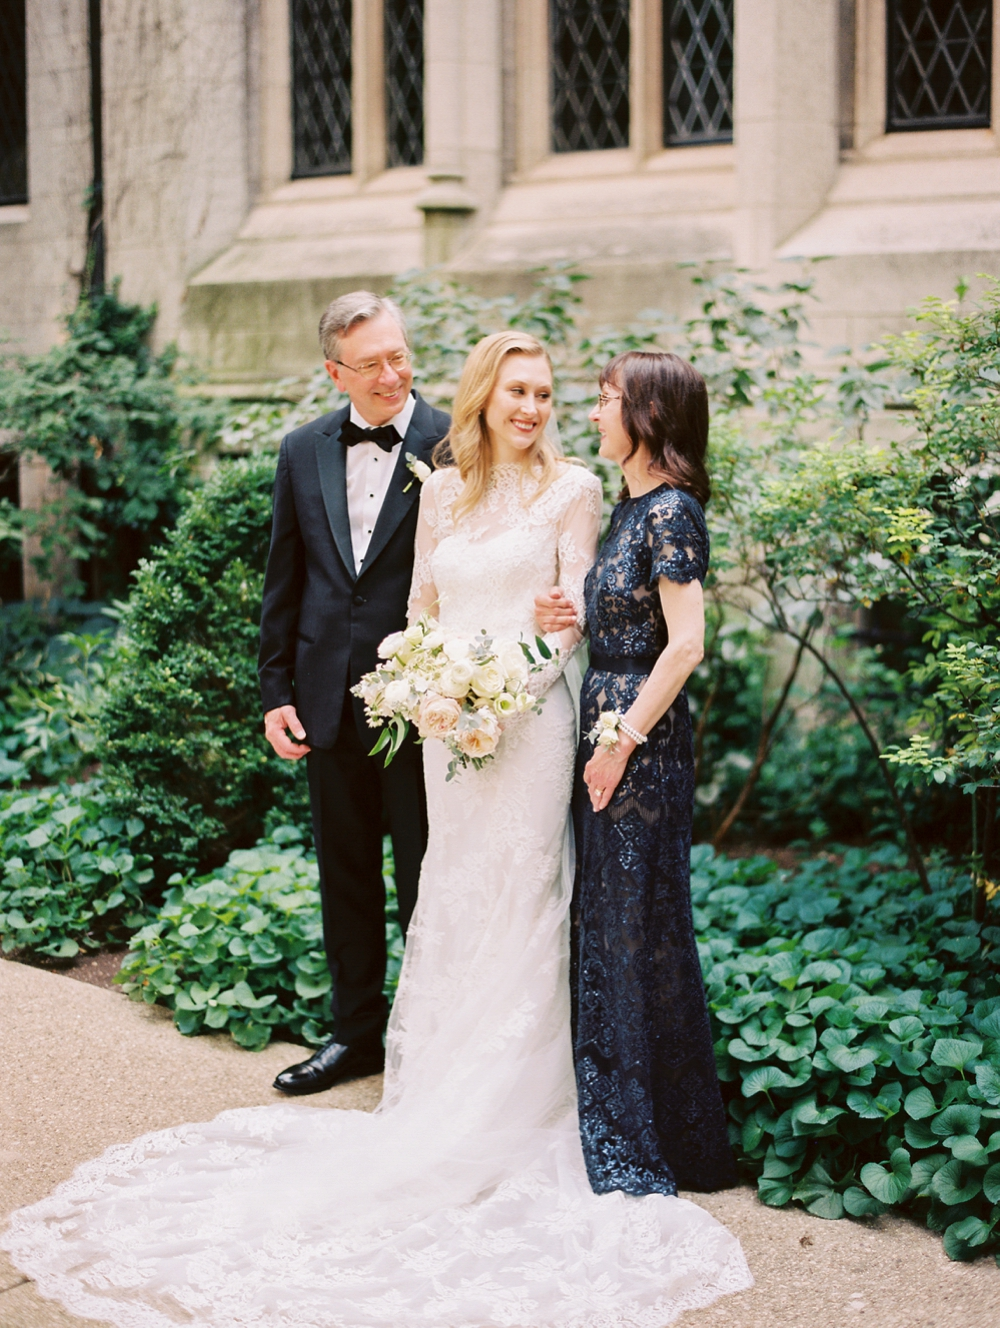 Kristin-La-Voie-Photography-Chicago-Wedding-29